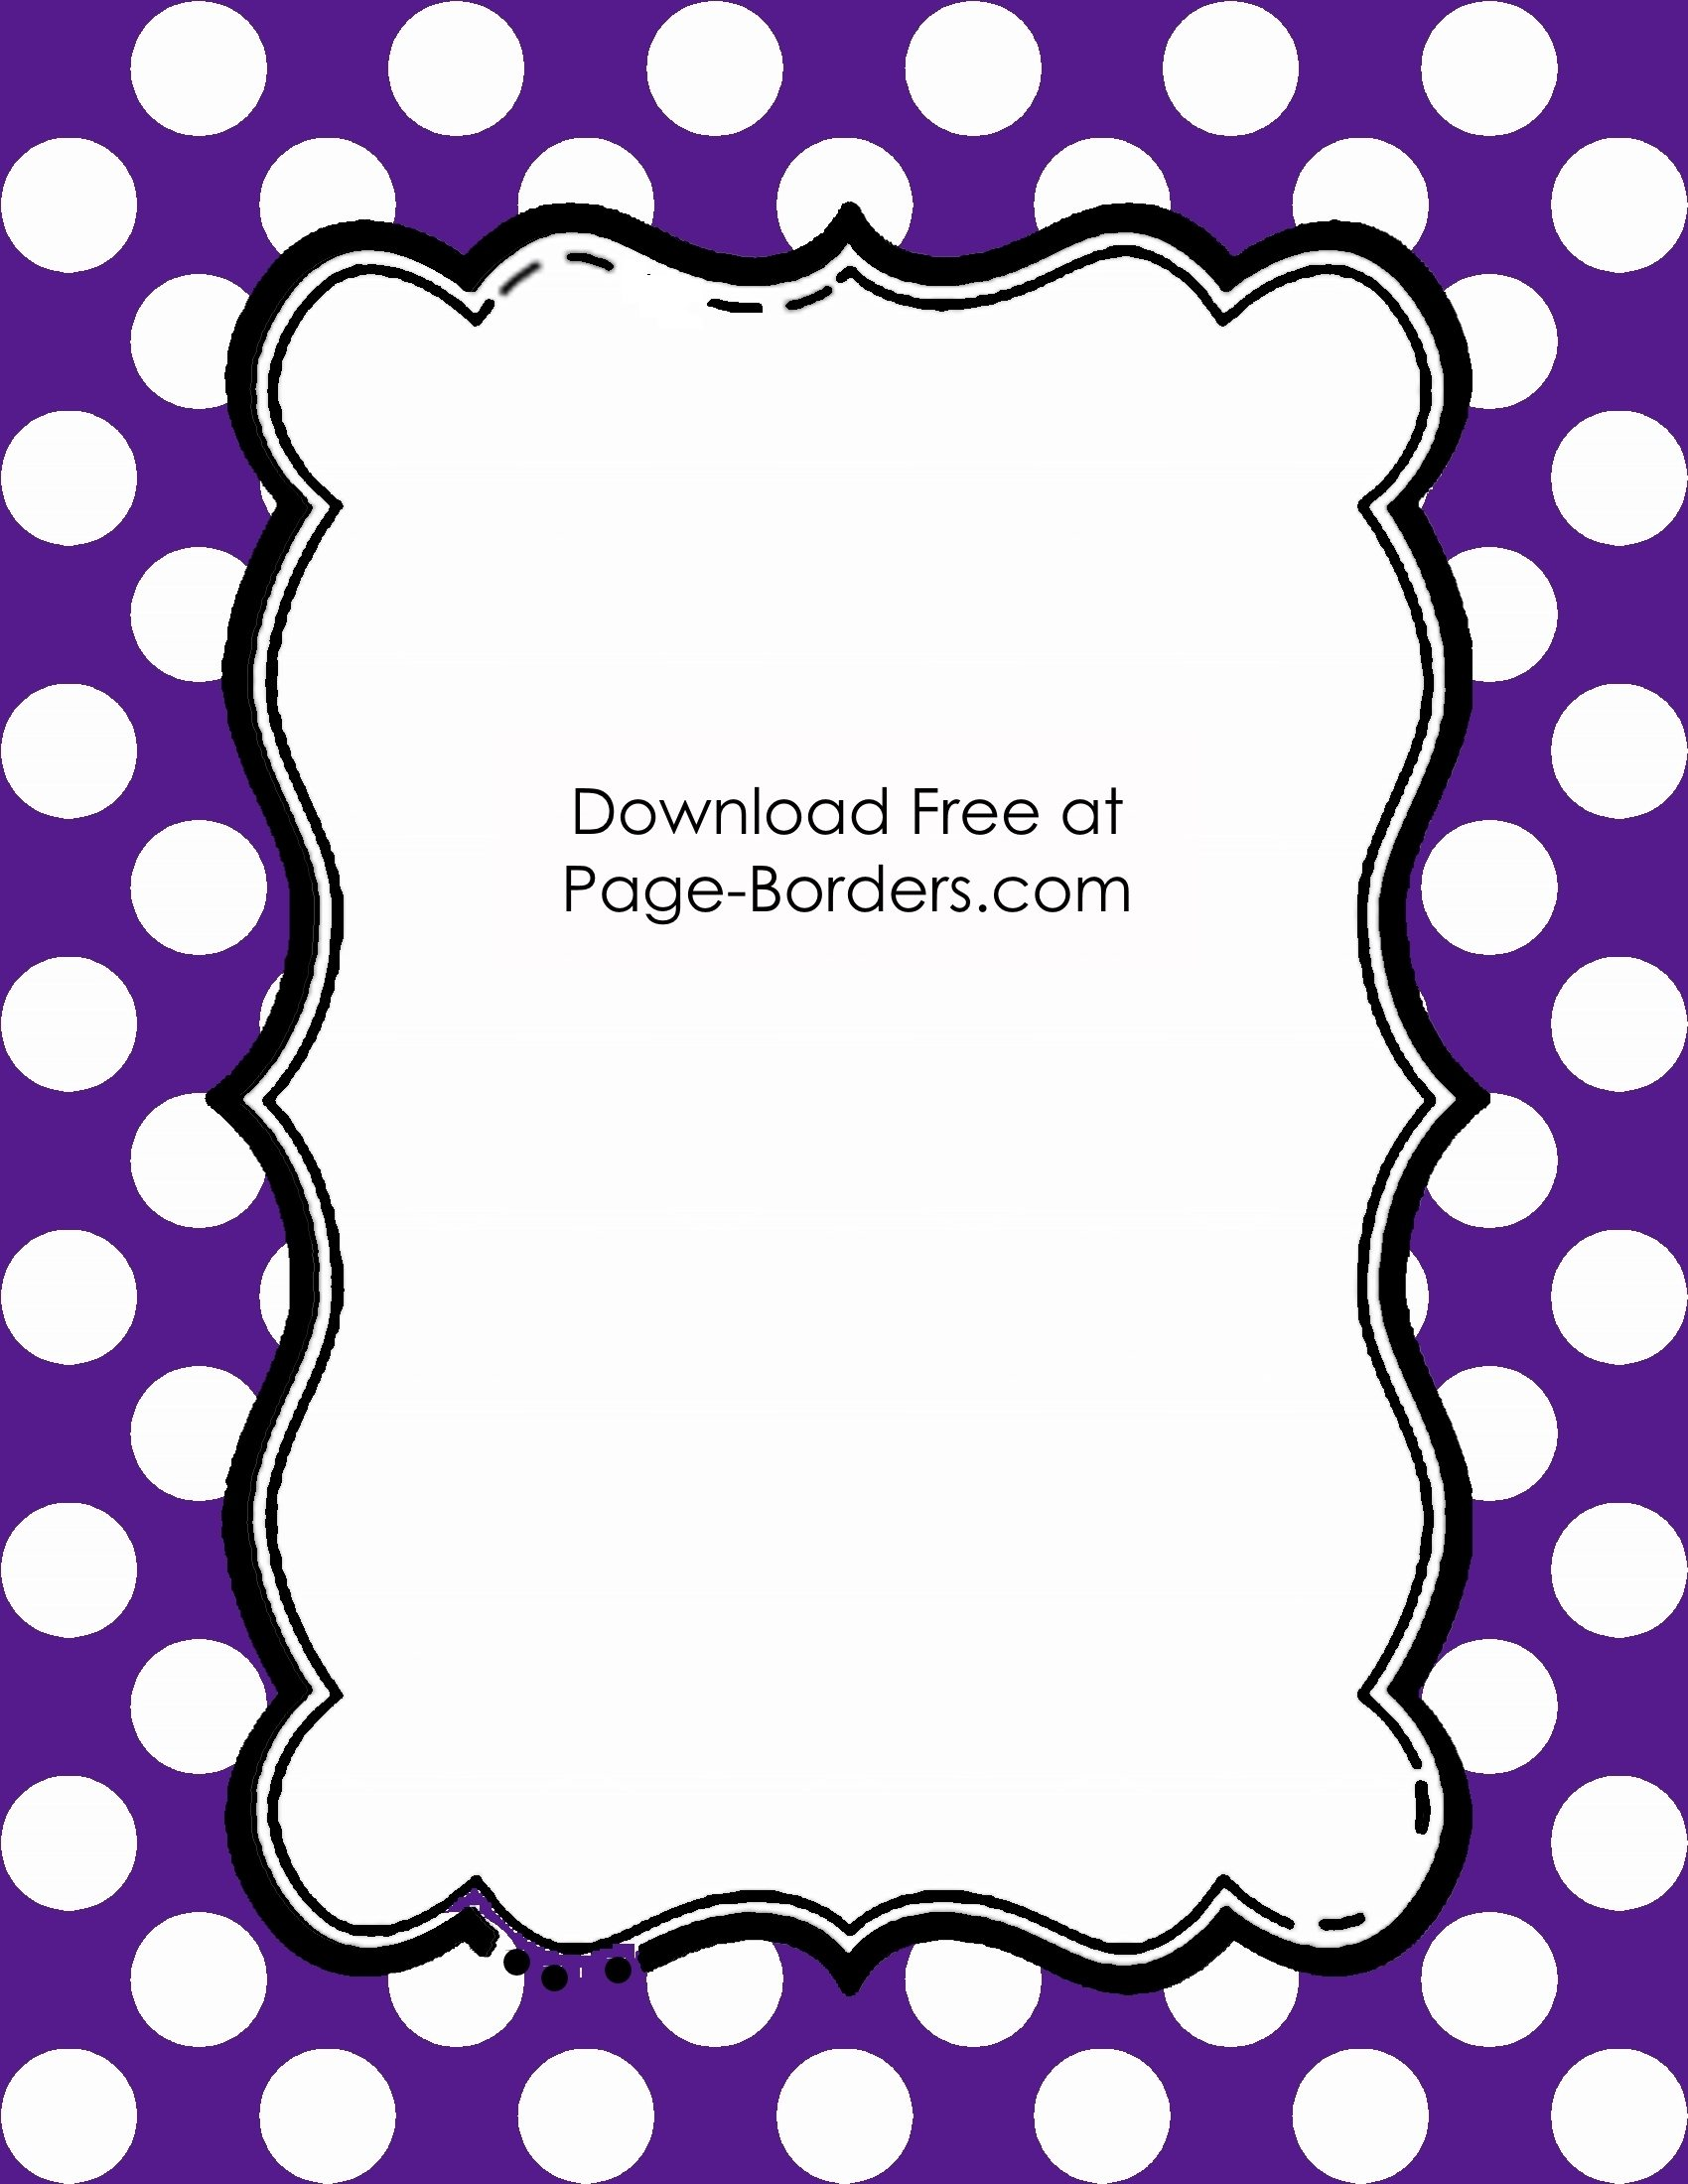 Free Polka Dot Border Templates in 16 Colors.